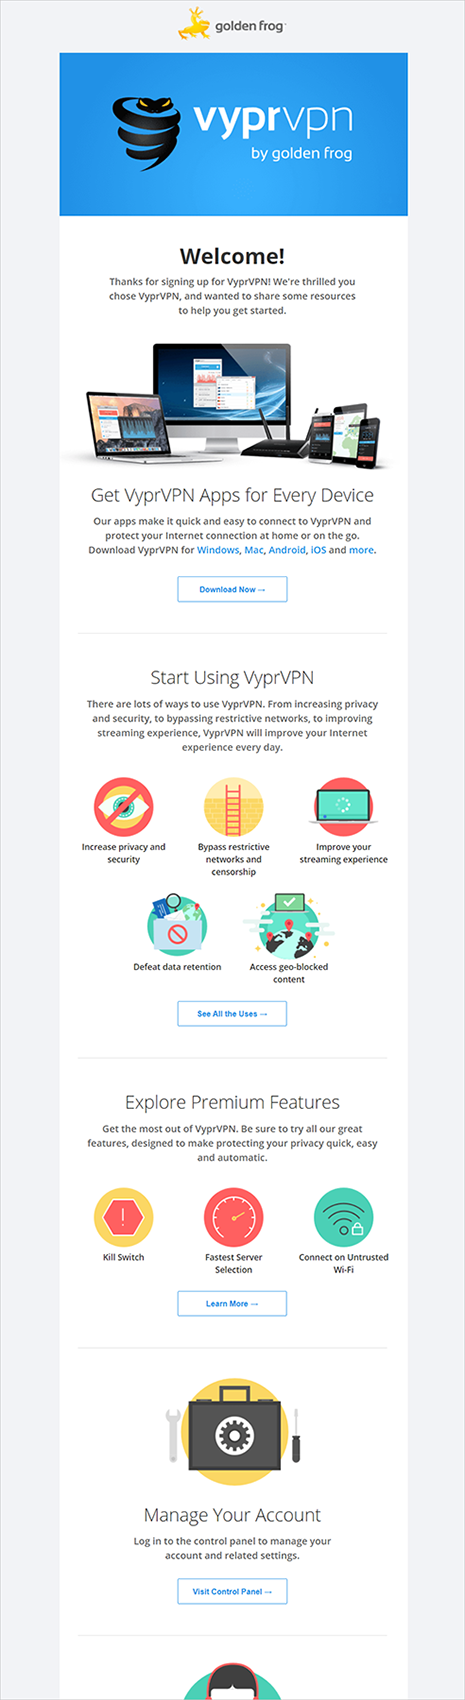 "adding value with tips example - vyprvpn's welcome e-mail tells the customer how they can ""get vyprvpn apps for every device"", ""start using vyprvpn"", ""explore premium features"", ""manage your account"", etc."